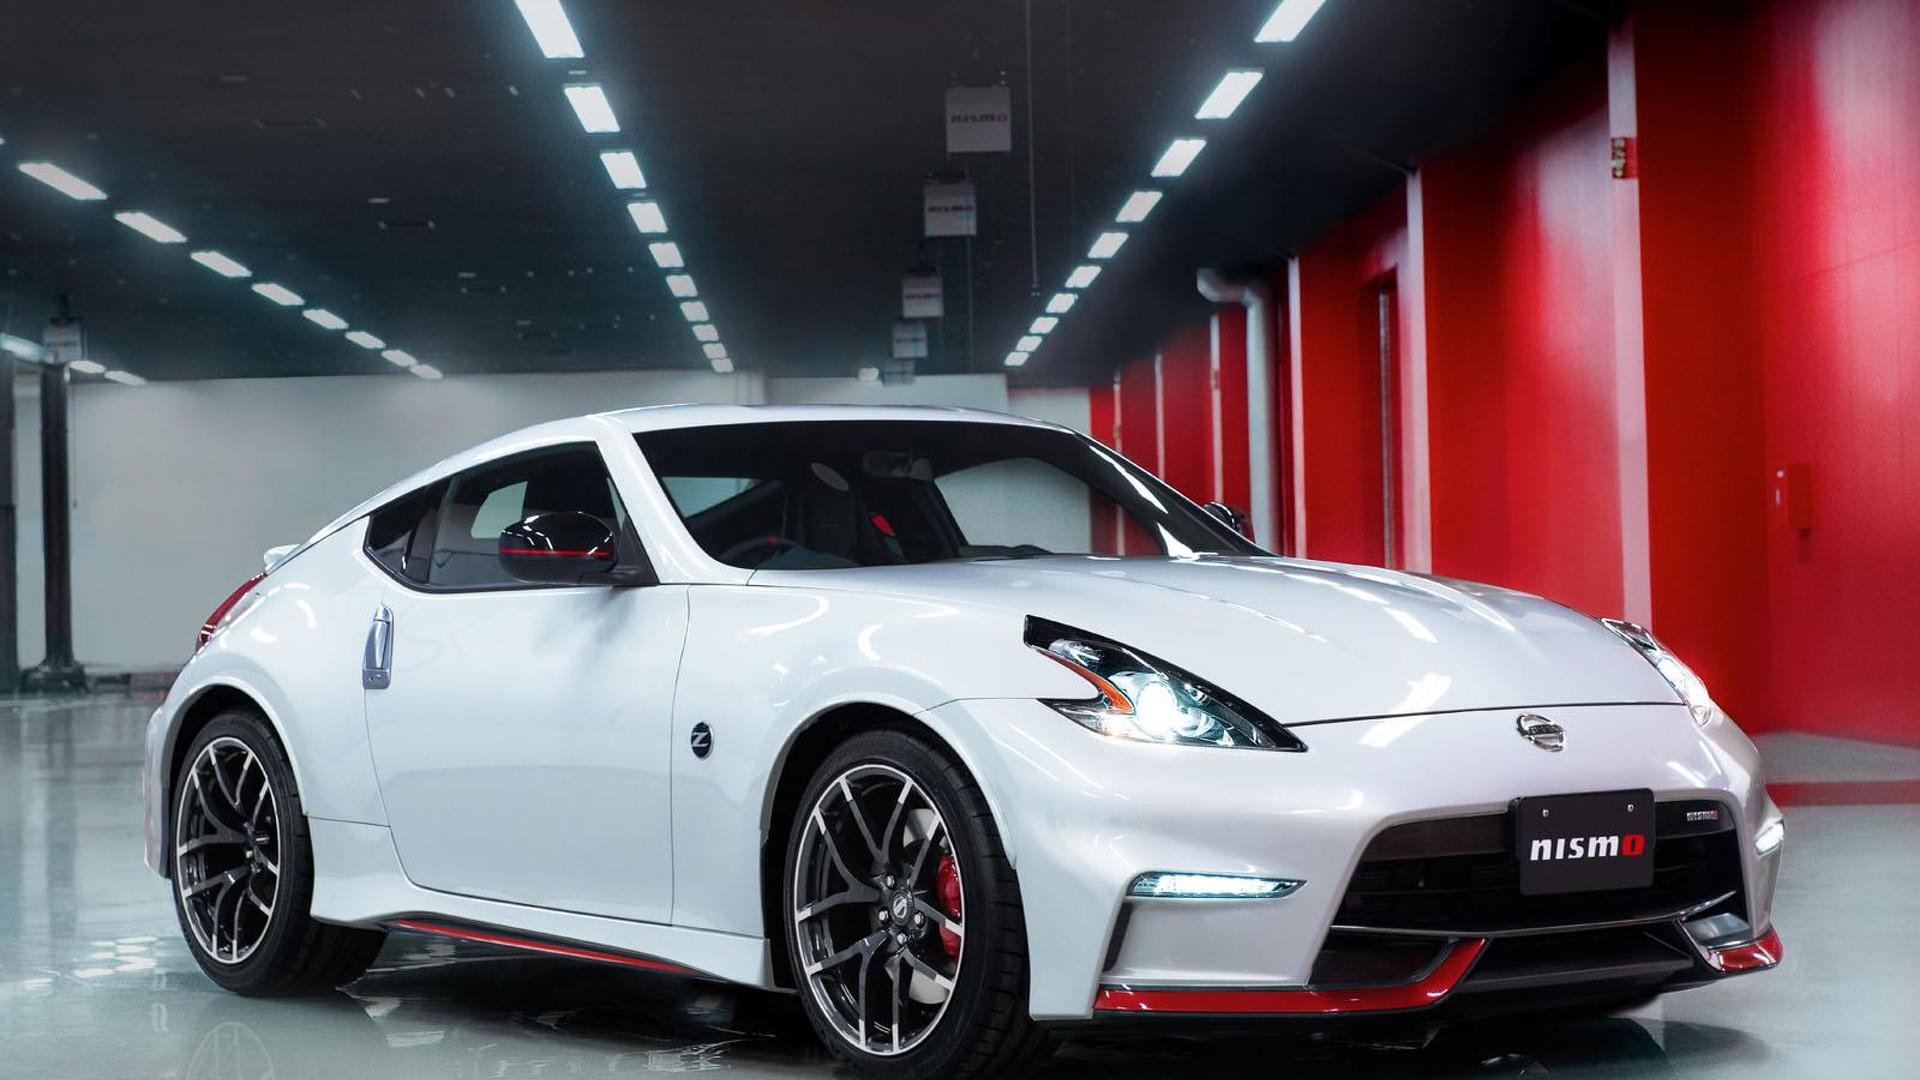 Nissan 370Z successor will pack hybrid tech and Mercedes engines - report